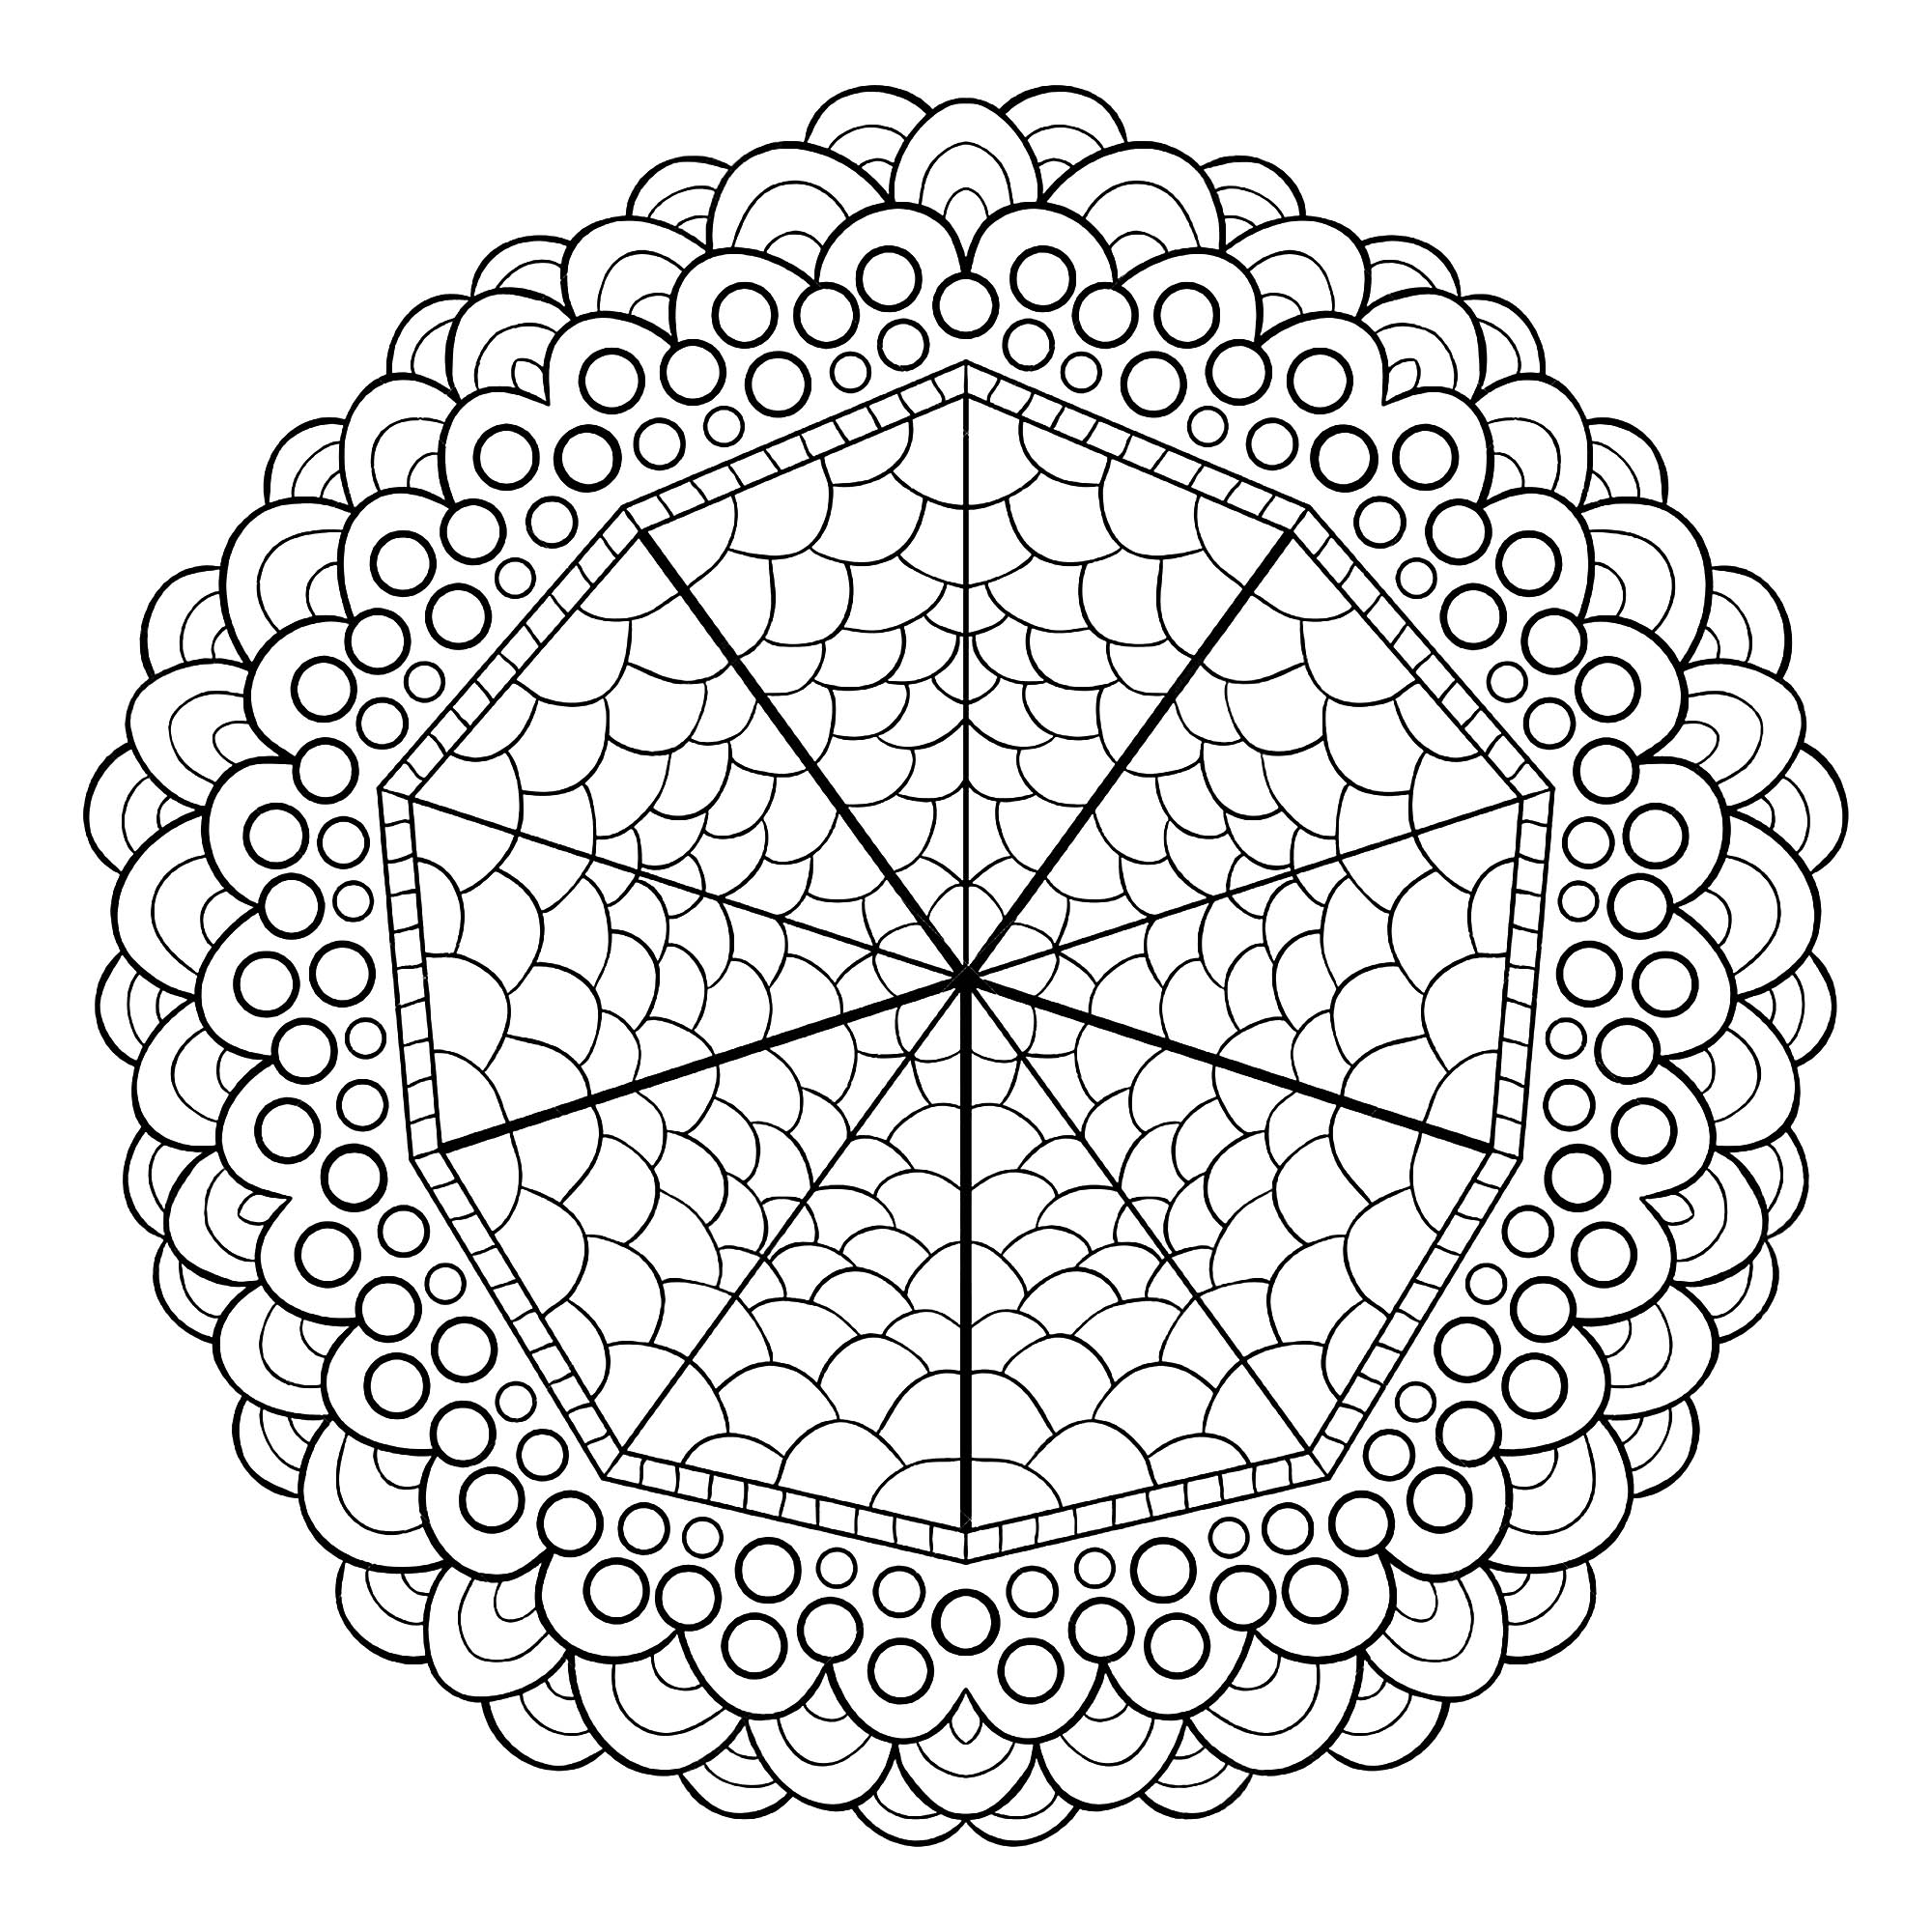 When coloring can really relax you ... This is the case with this Mandala coloring page of high quality. It can sometimes be even more relaxing when coloring and passively listening to music : don't hesitate to do it !